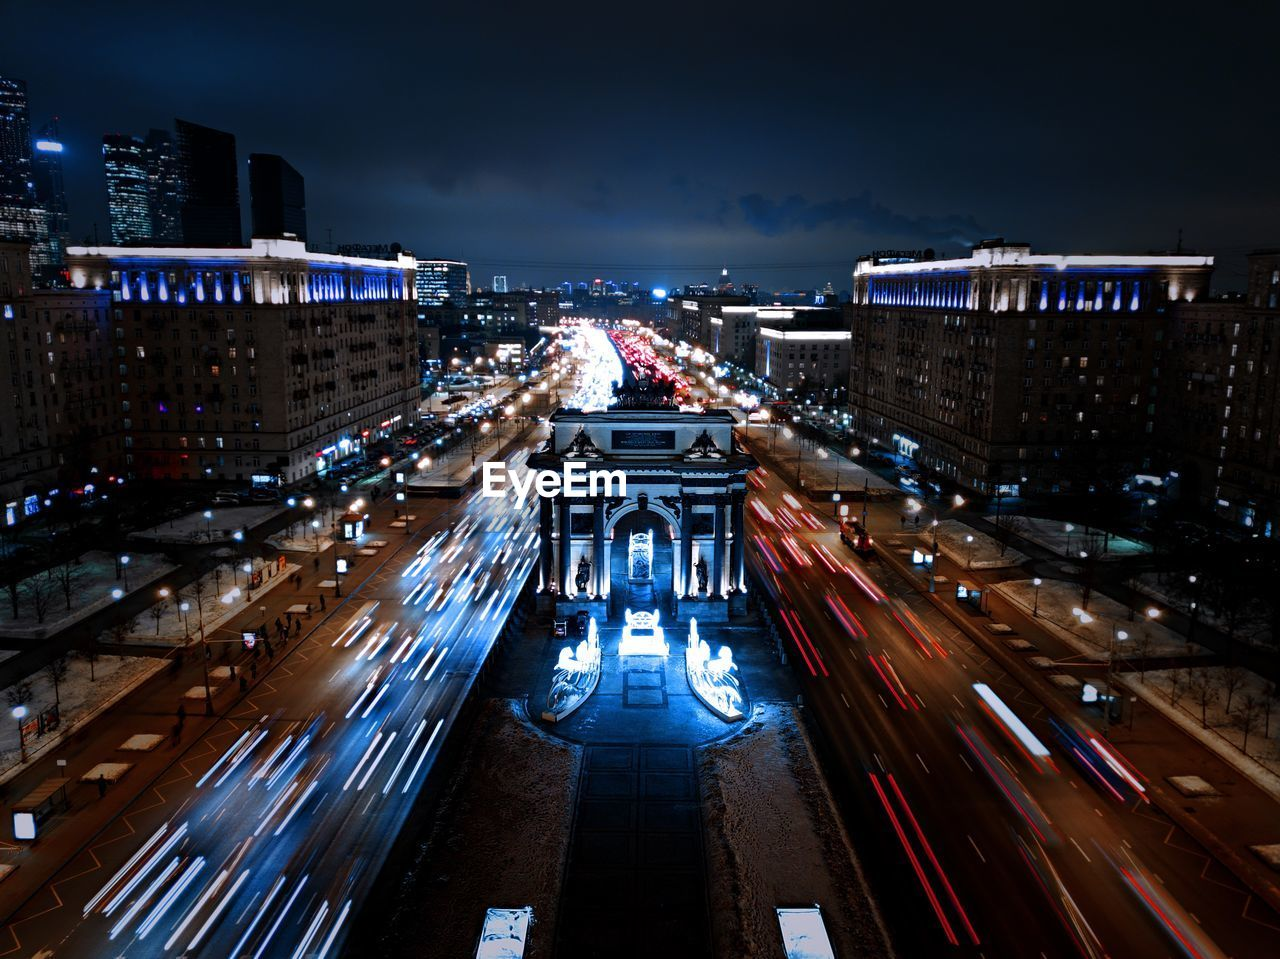 architecture, building exterior, illuminated, built structure, night, city, transportation, high angle view, road, sky, long exposure, building, motion, street, city life, mode of transportation, blurred motion, cityscape, outdoors, land vehicle, no people, light